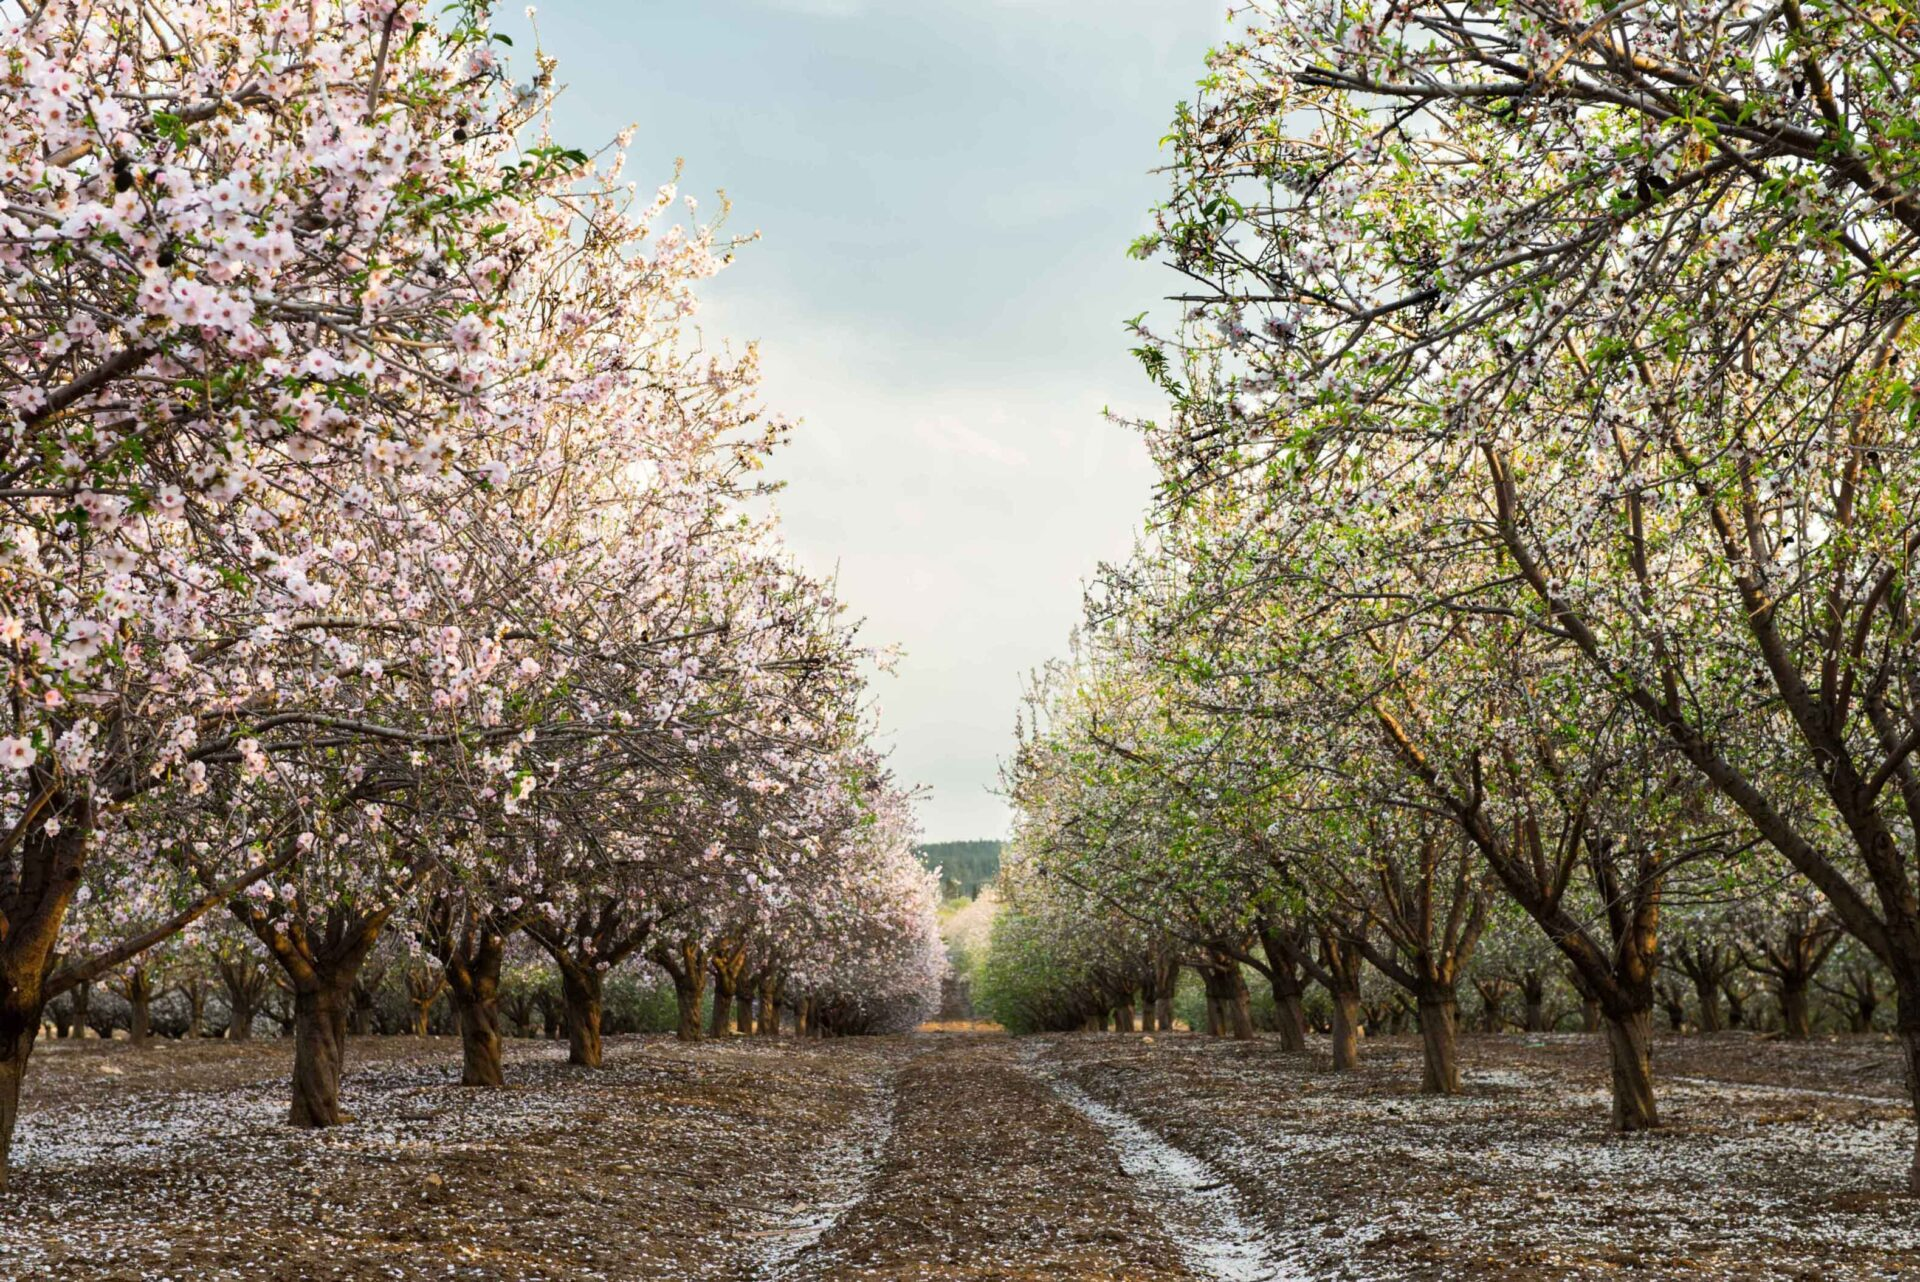 Best Management Practices for Fungal Disease in Almonds